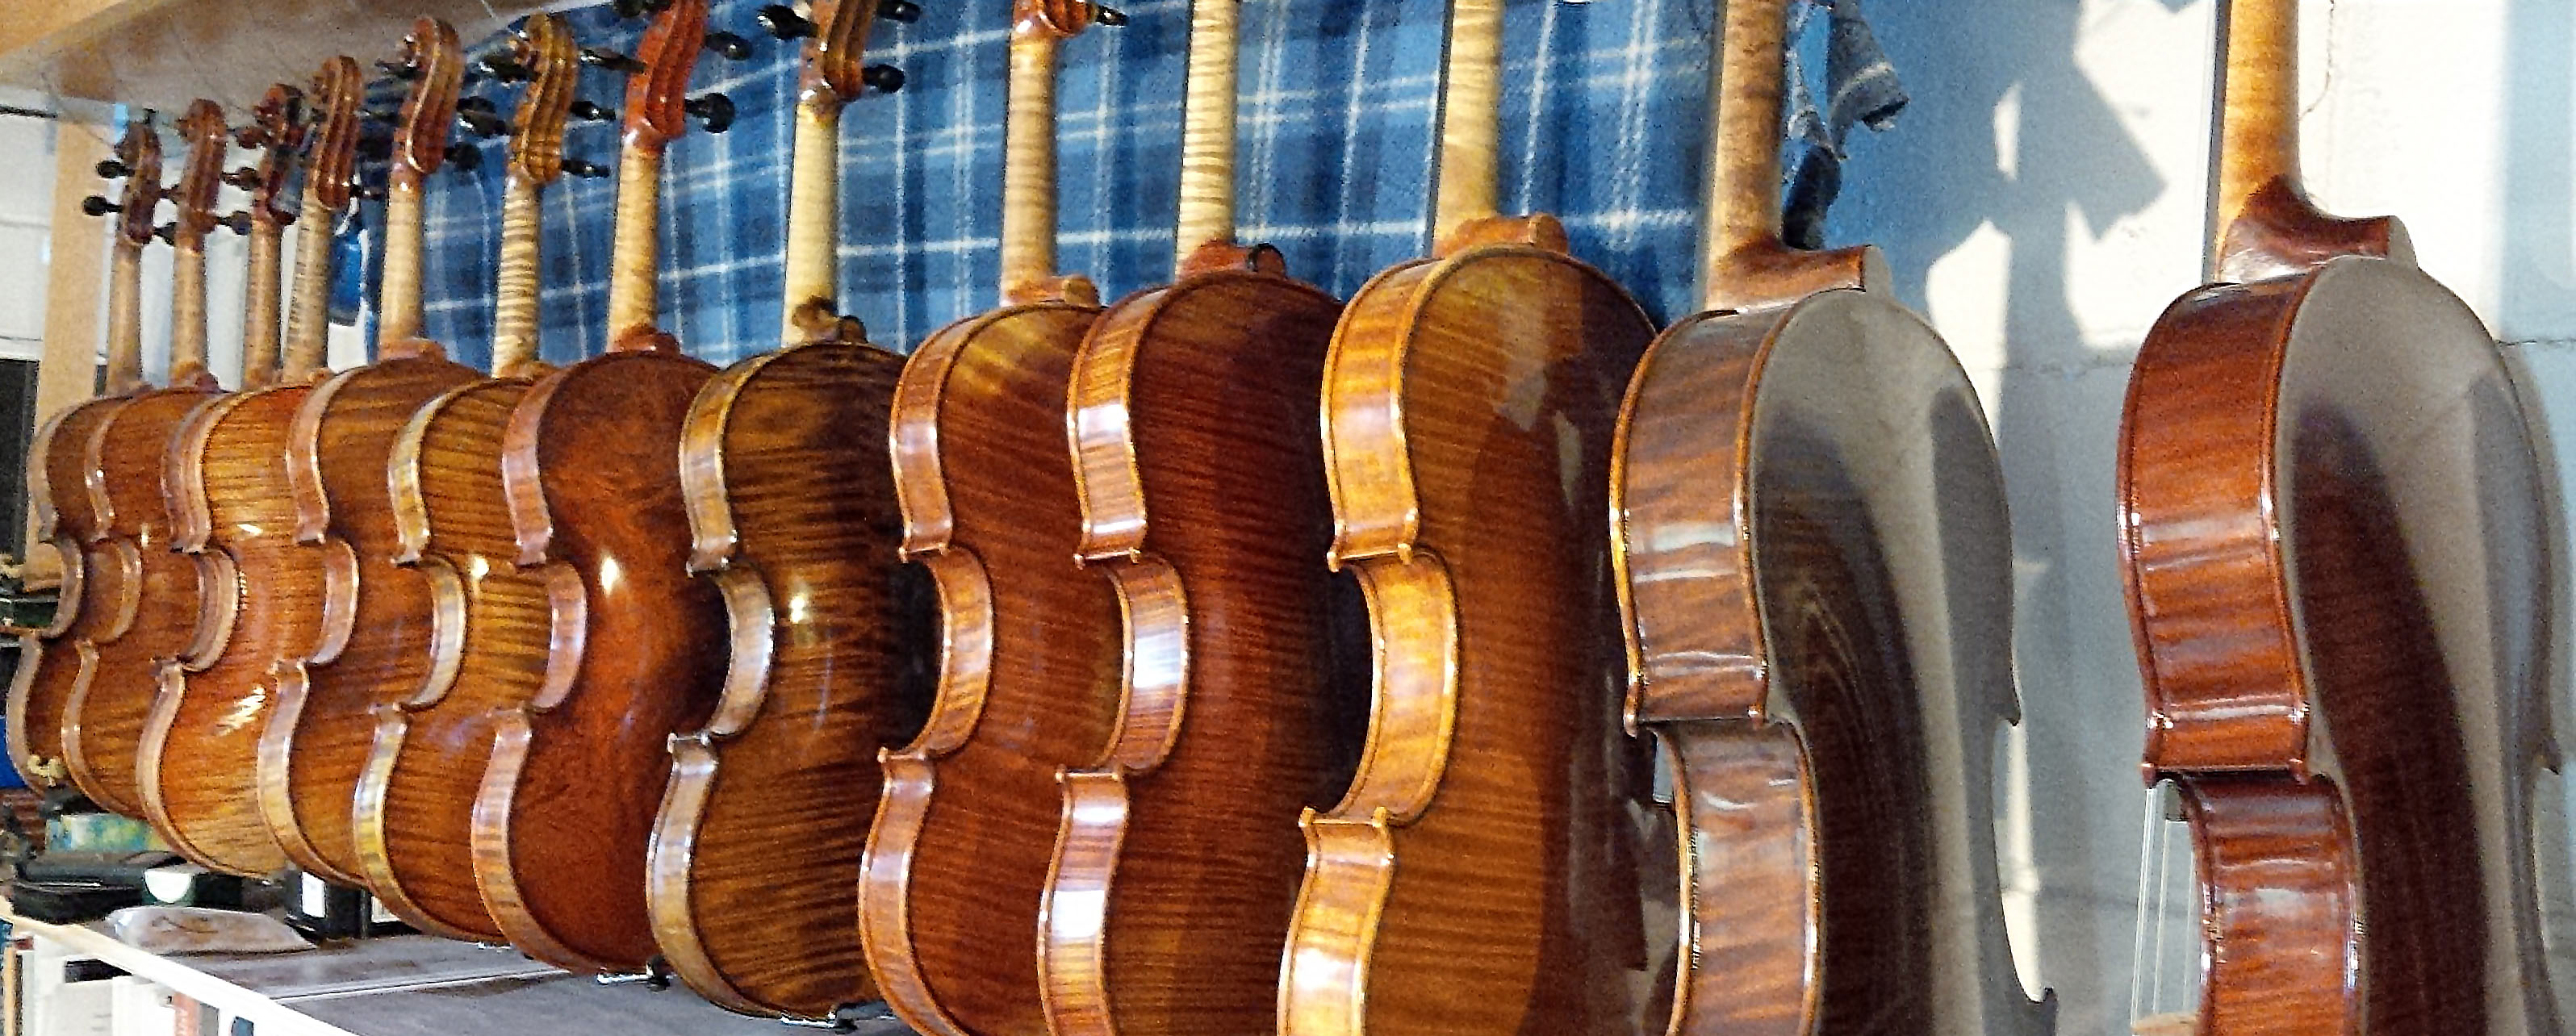 Violins and violas hanging from rack